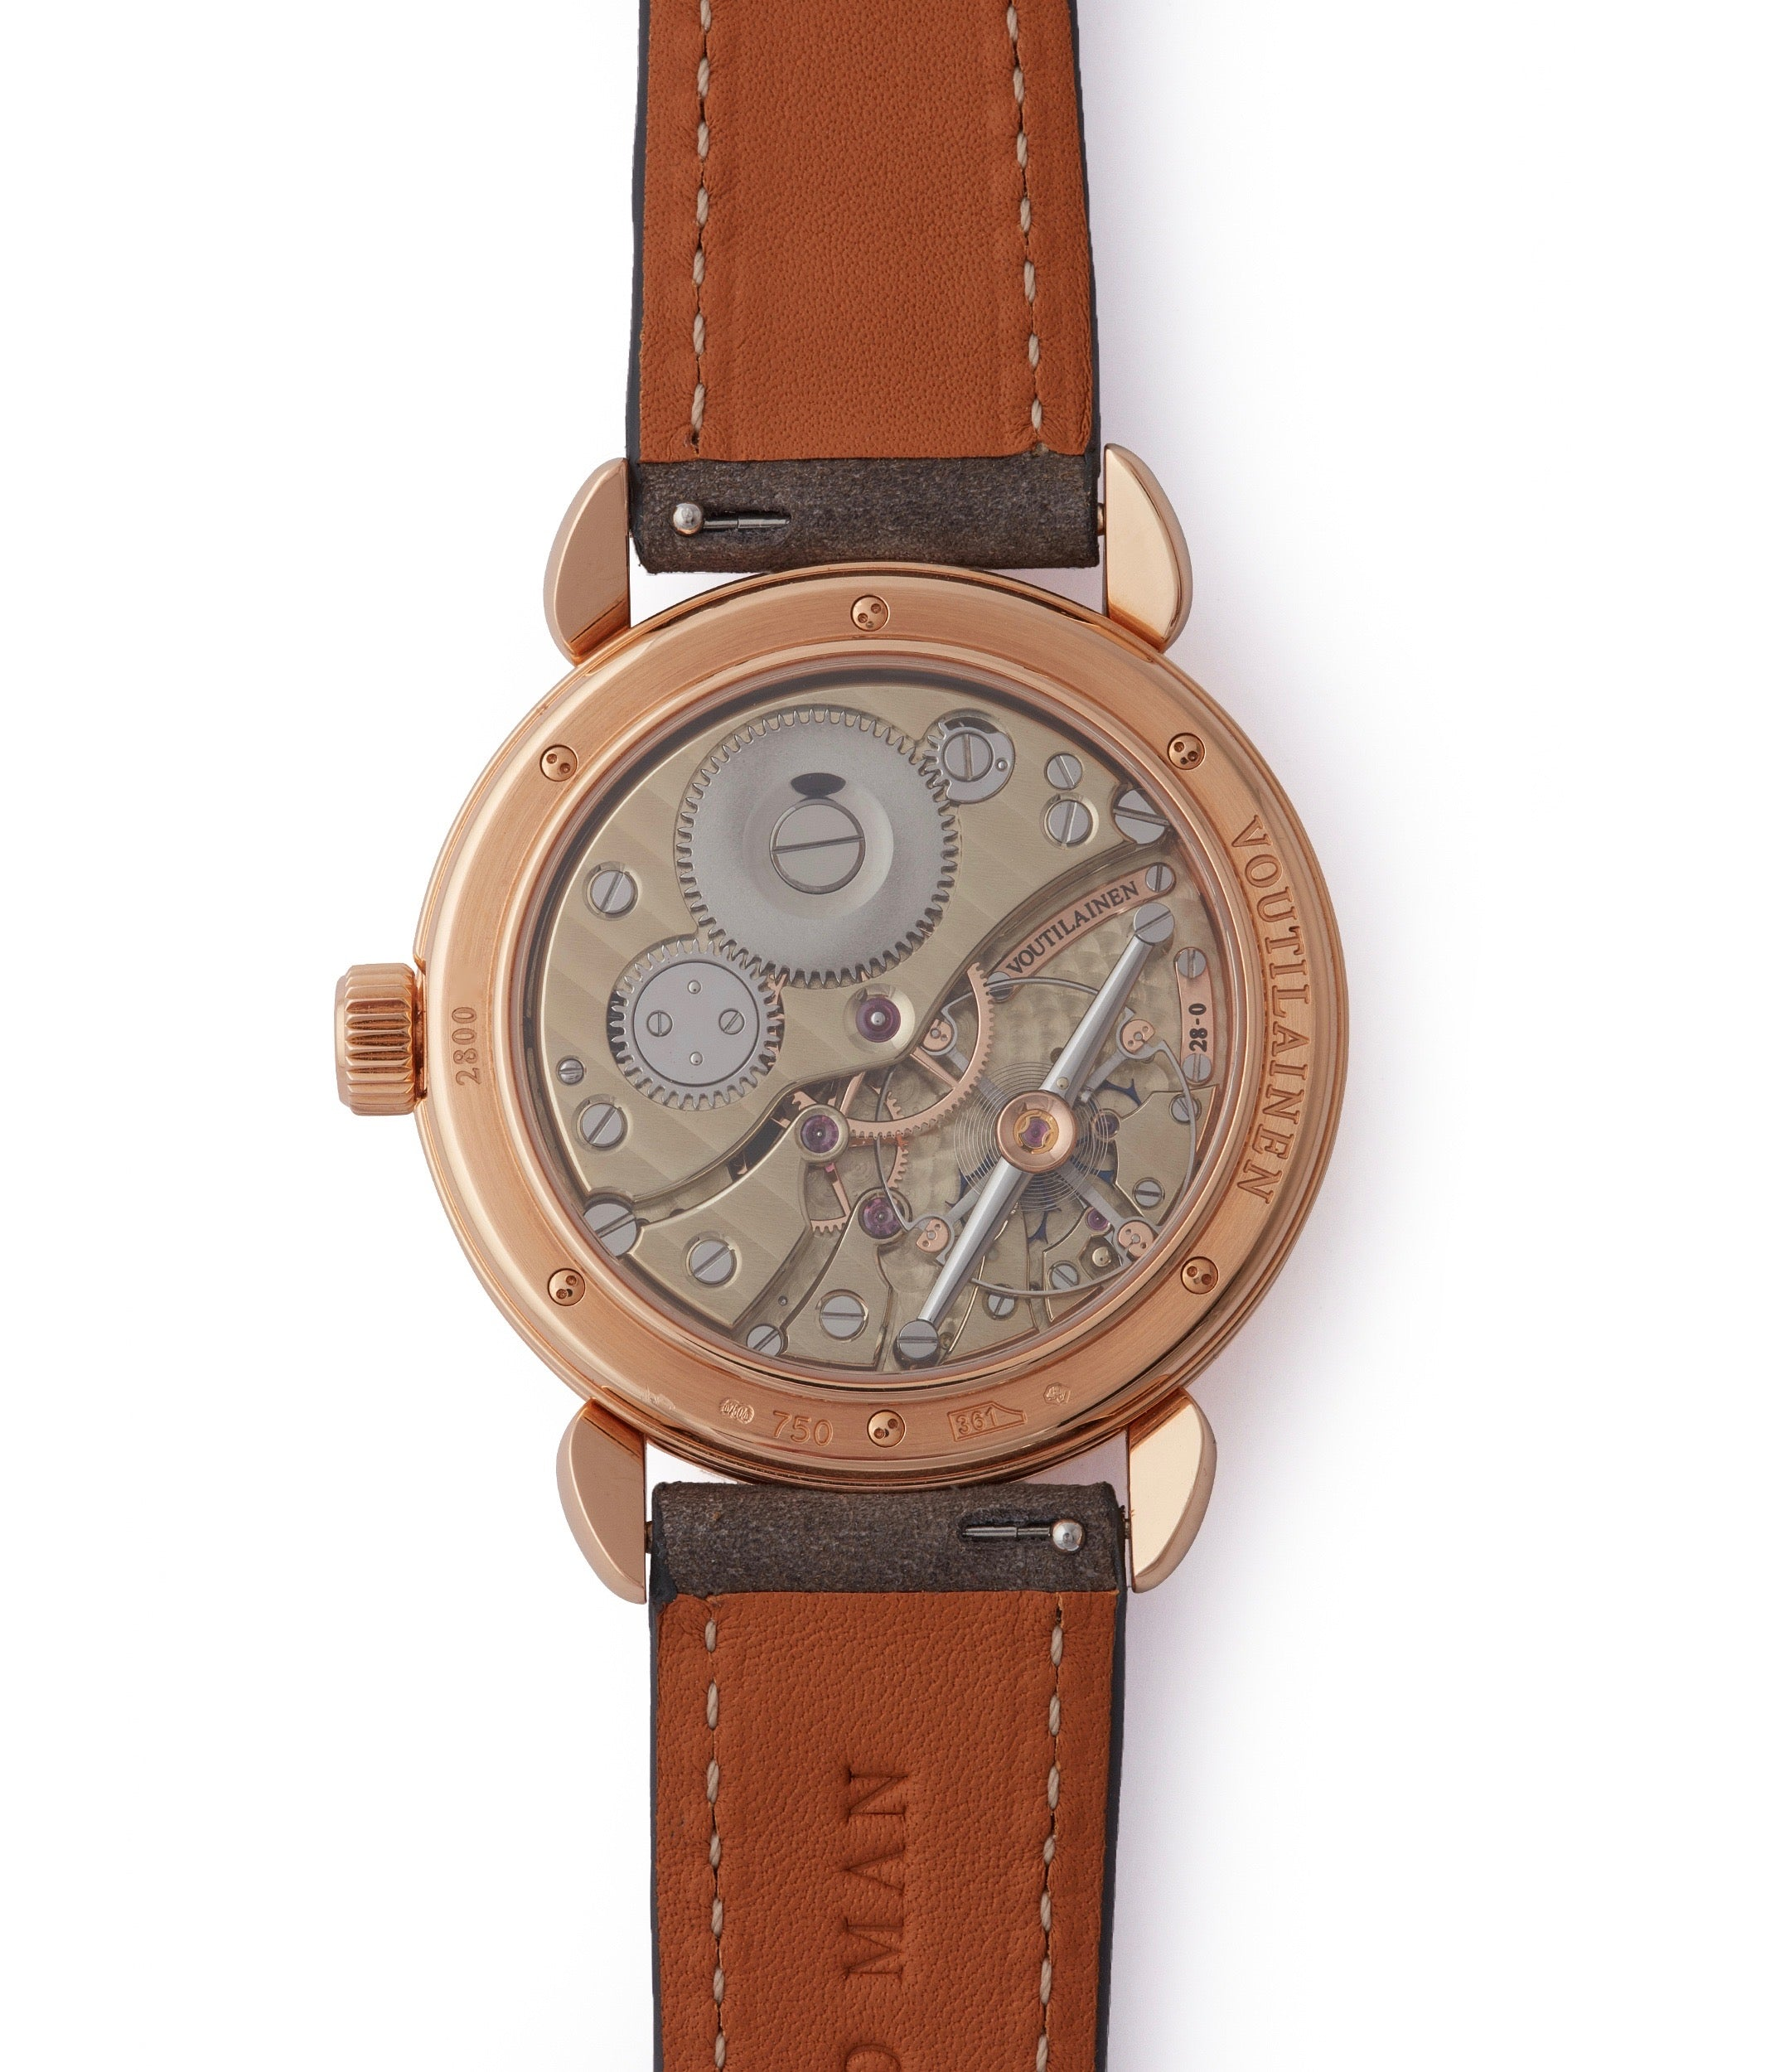 calibre 18 manula-winding Voutilainen Vingt-8 grey dial rose gold time-only watch independent watchmaker for sale online A Collected Man London UK specialist rare watches